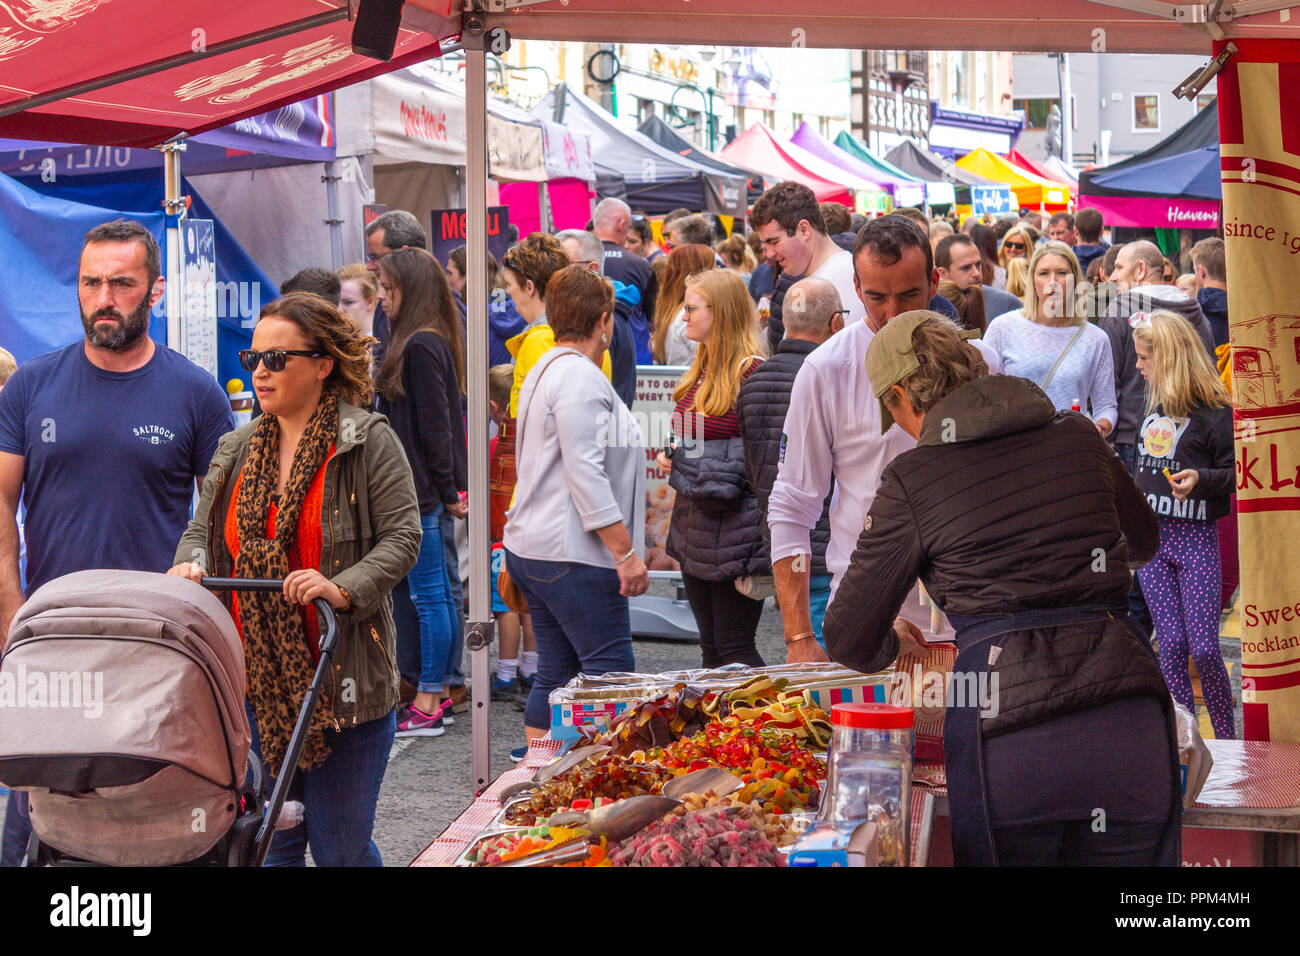 taste-of-west-cork-outdoor-food-festival-attracts-crowds-of-shoppers-skibbereen-west-cork-ireland-PPM4MH.jpg